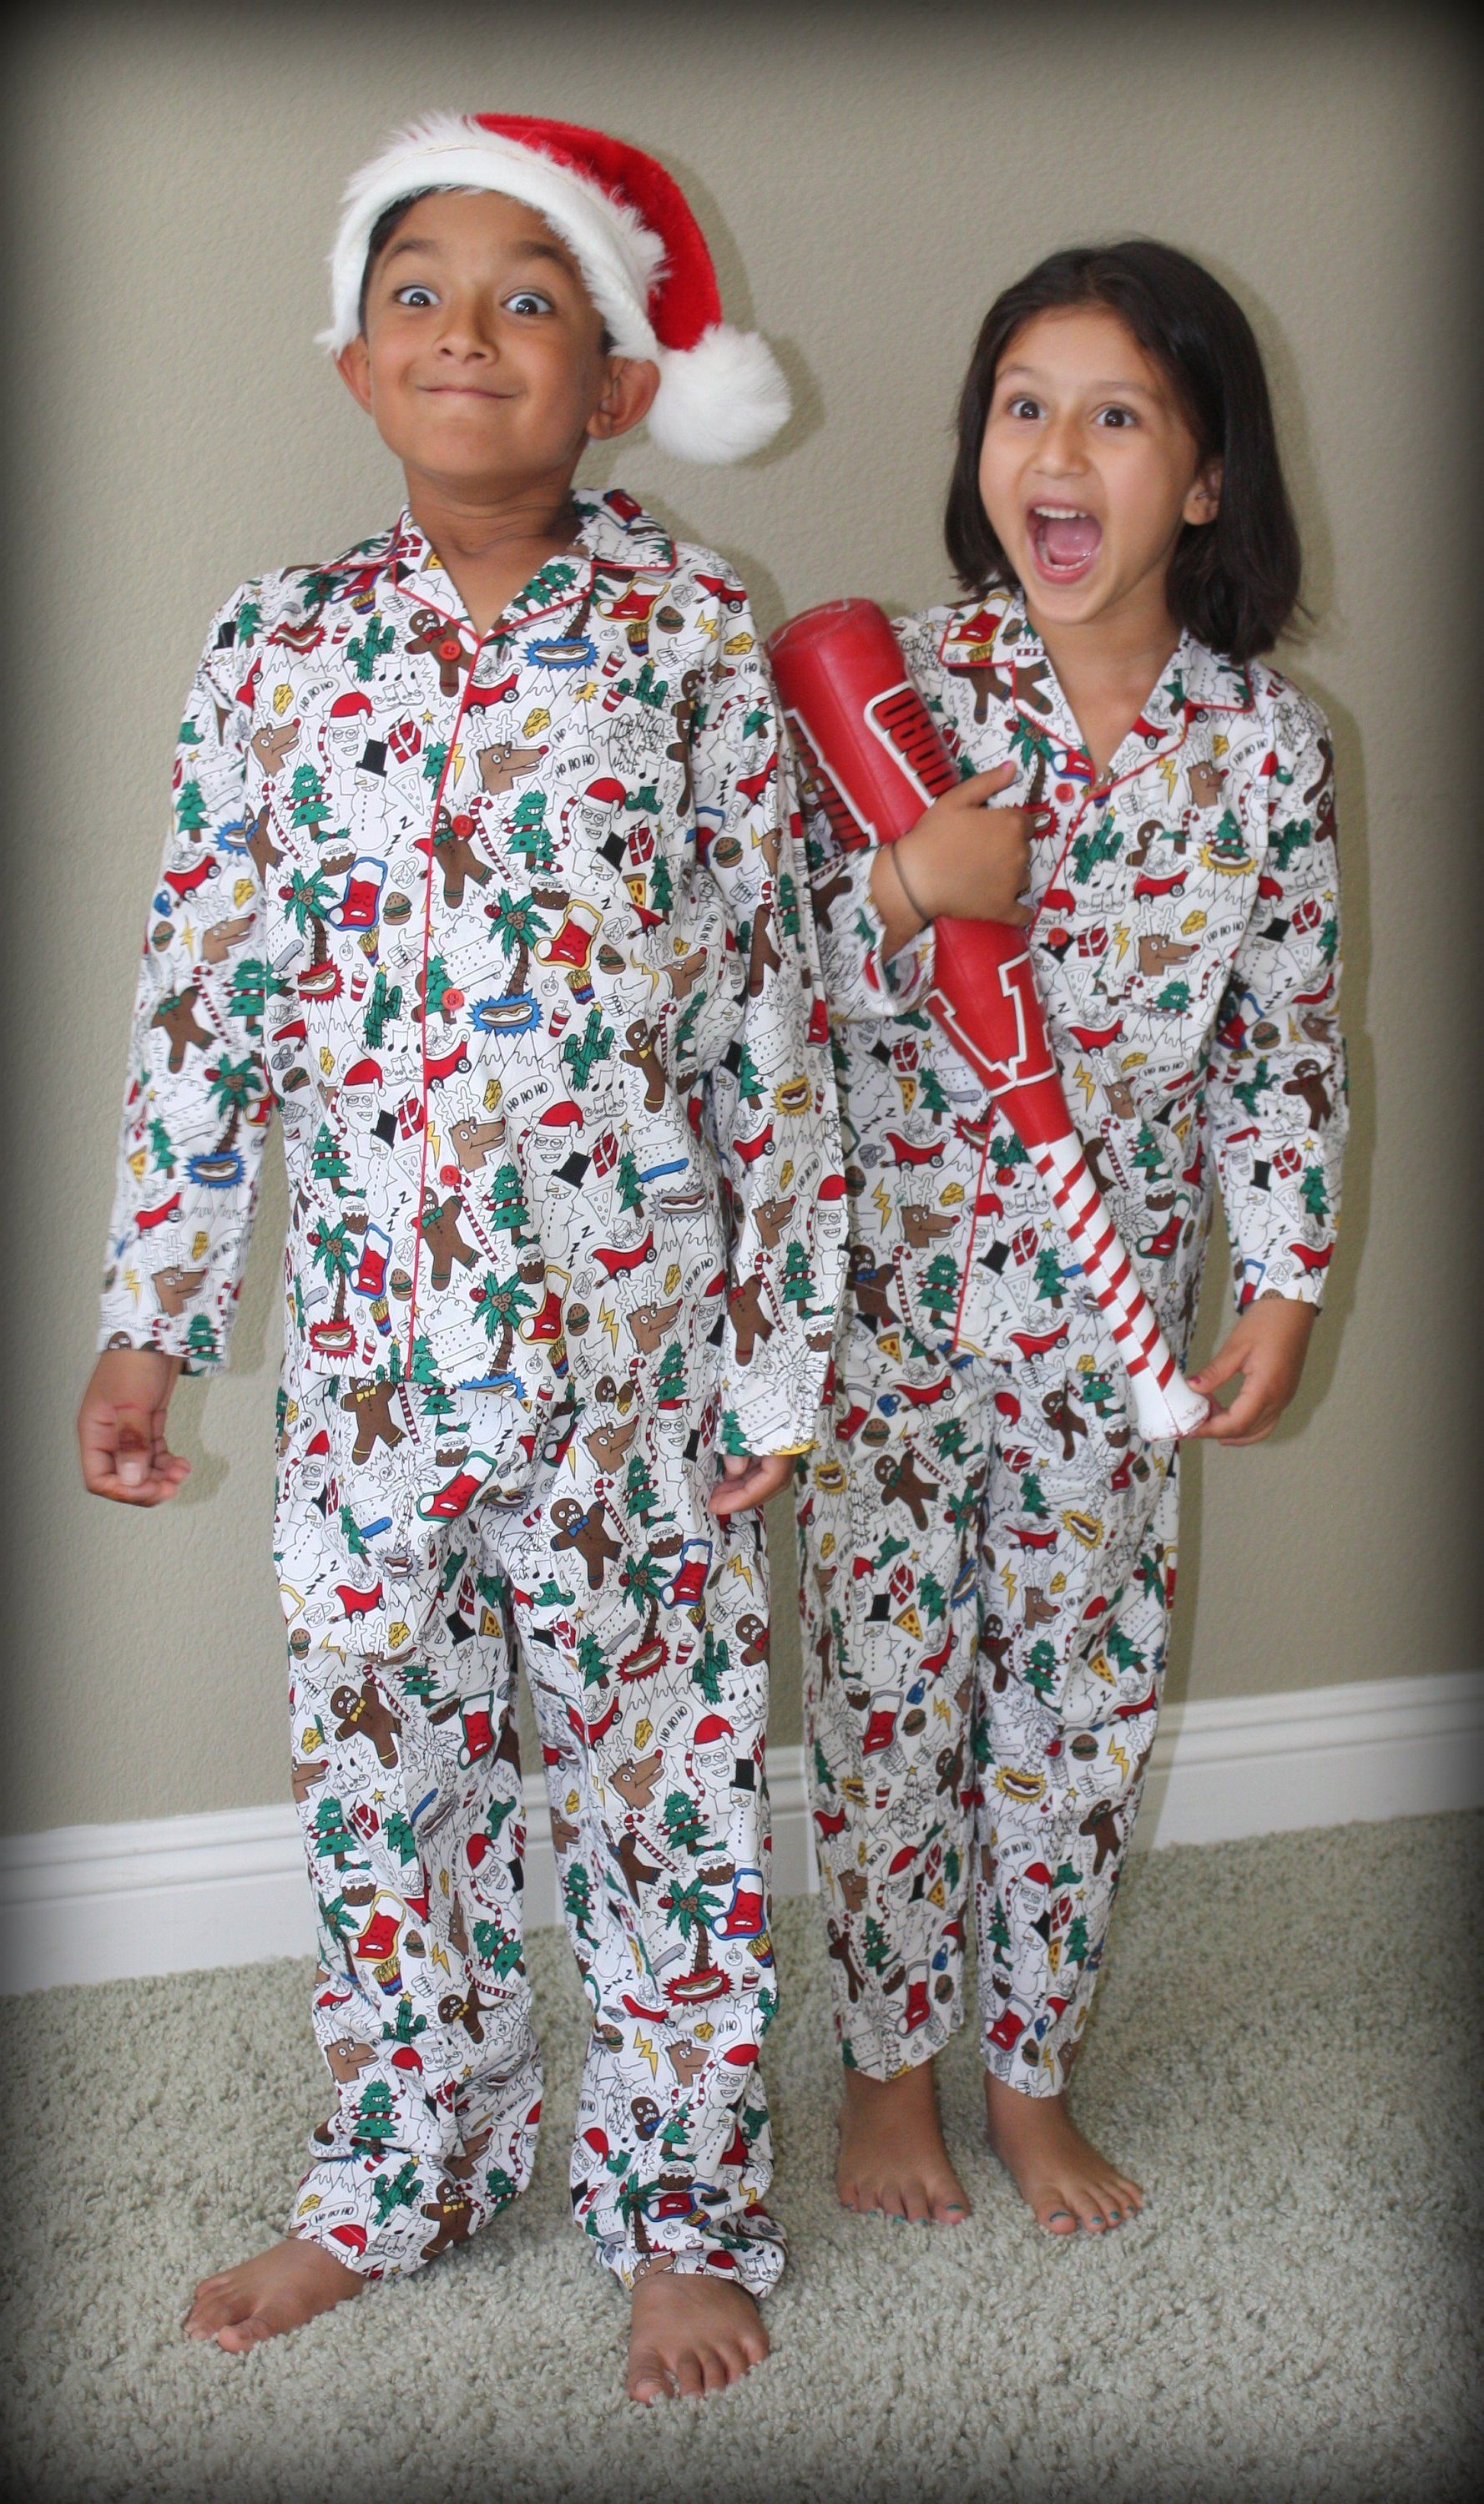 Christmas Print Pajama / Holiday Pajama Holiday pajamas